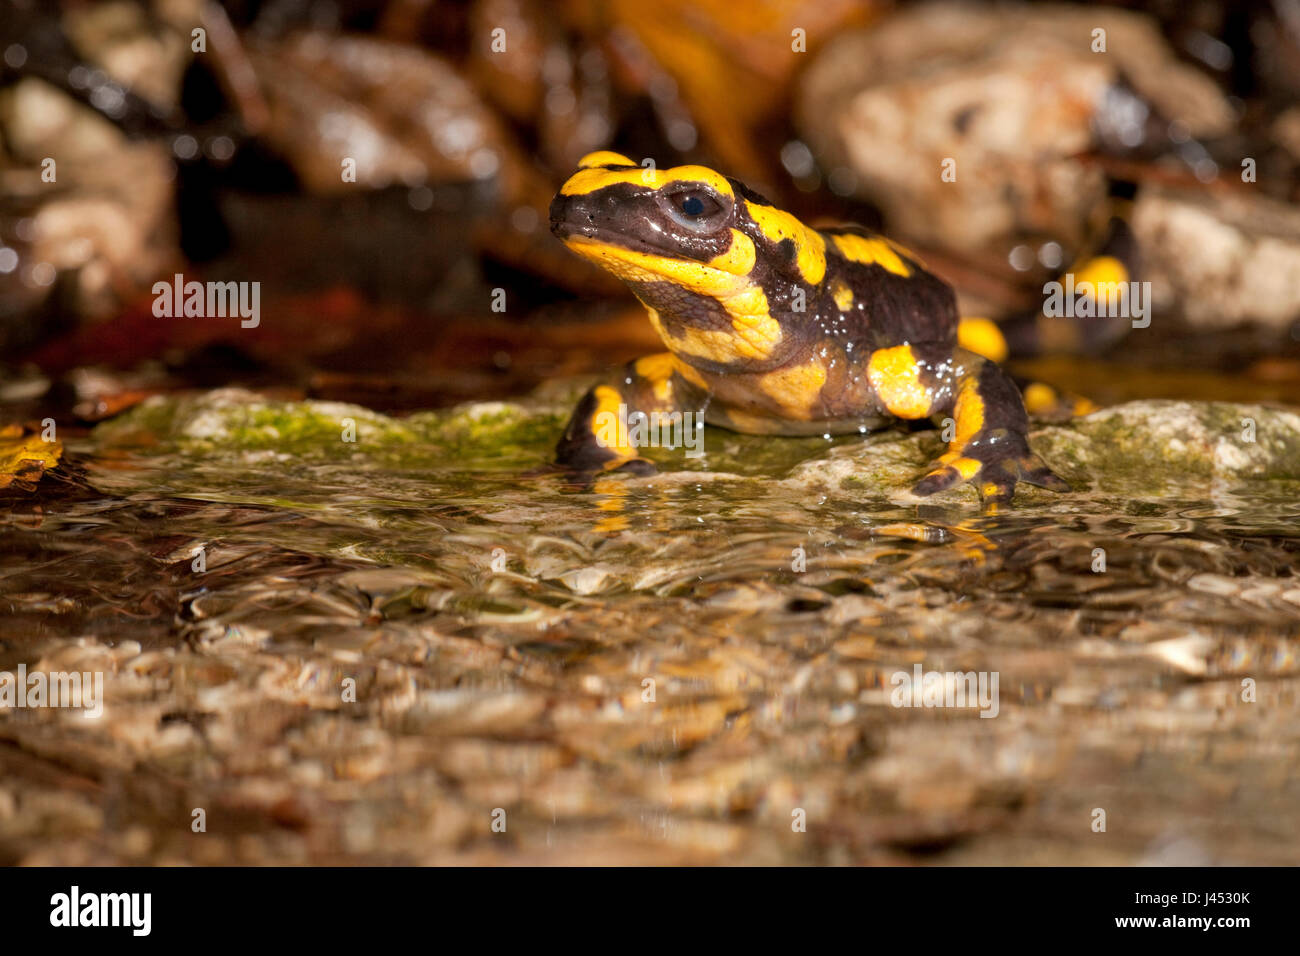 photo of a fire salamander on the edge of a stream - Stock Image